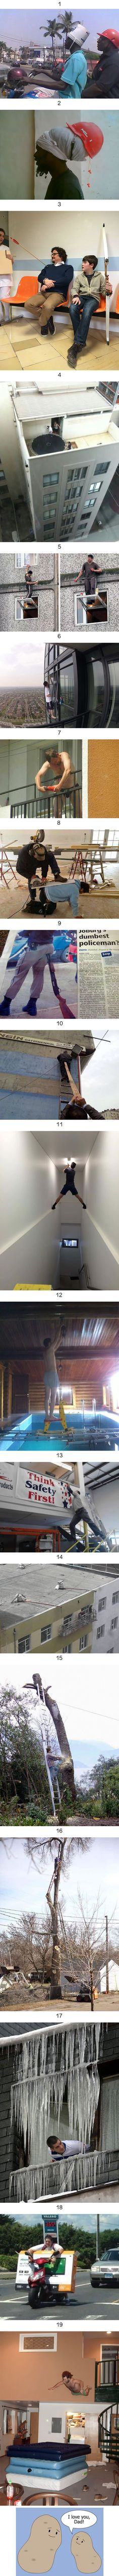 These 19 pictures will explain you in great detail why women live longer than men. Check out the pictures below and share your comments. Funny Pins, Funny Memes, Hilarious, Jokes, Best Funny Pictures, Cool Pictures, Natural Selection, Sarcasm Humor, Having A Bad Day